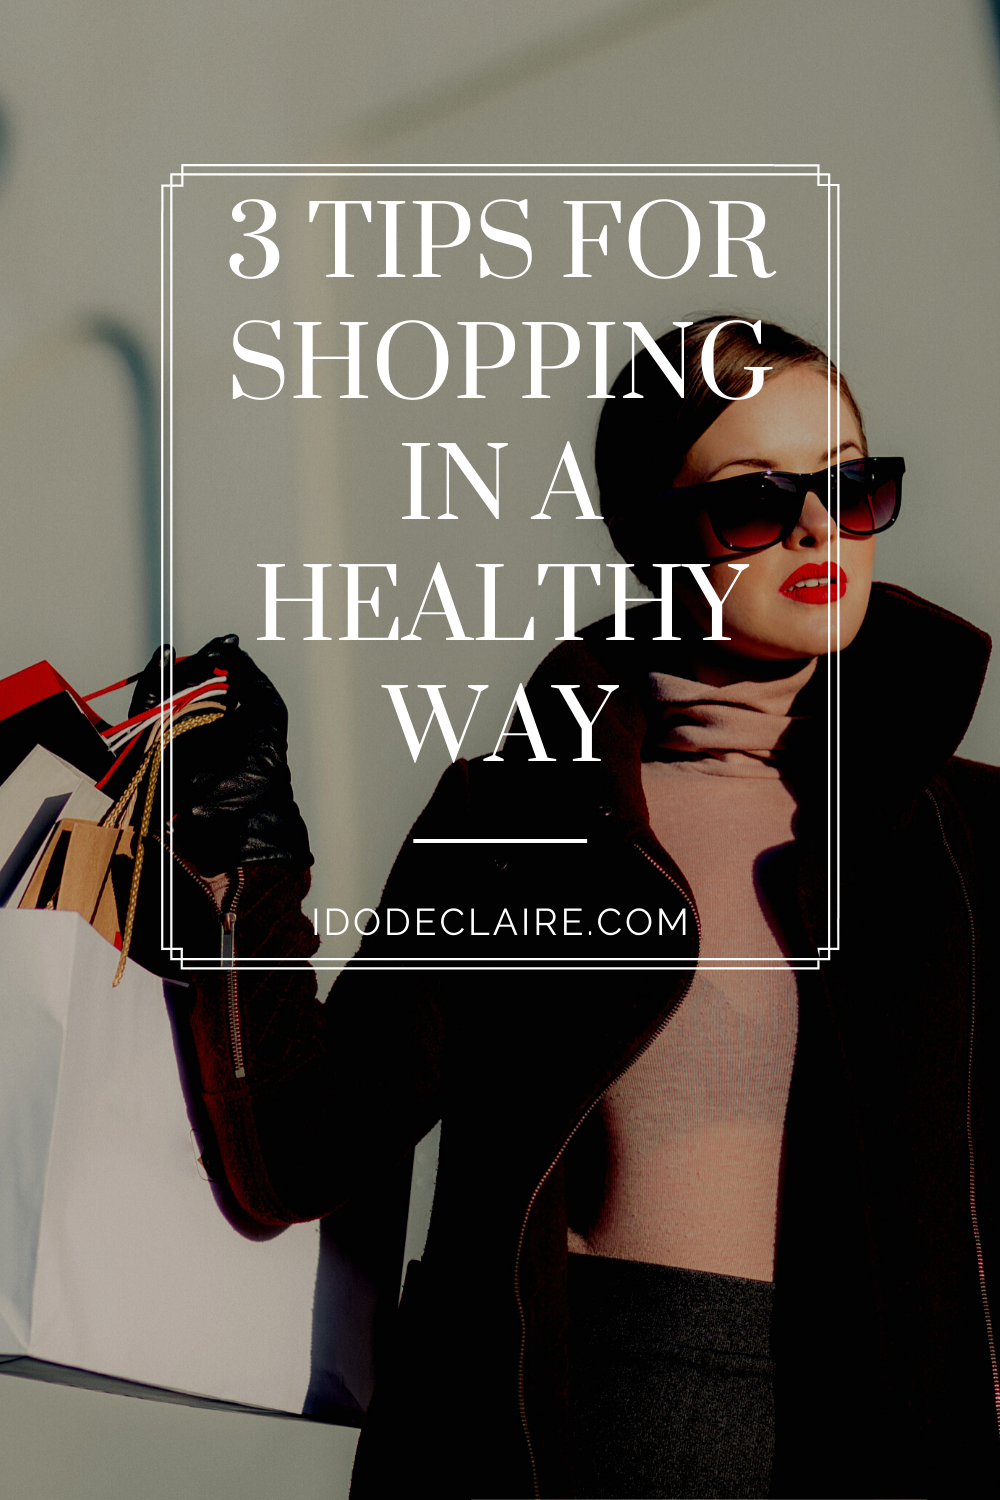 3 Tips for Shopping In a Healthy Way